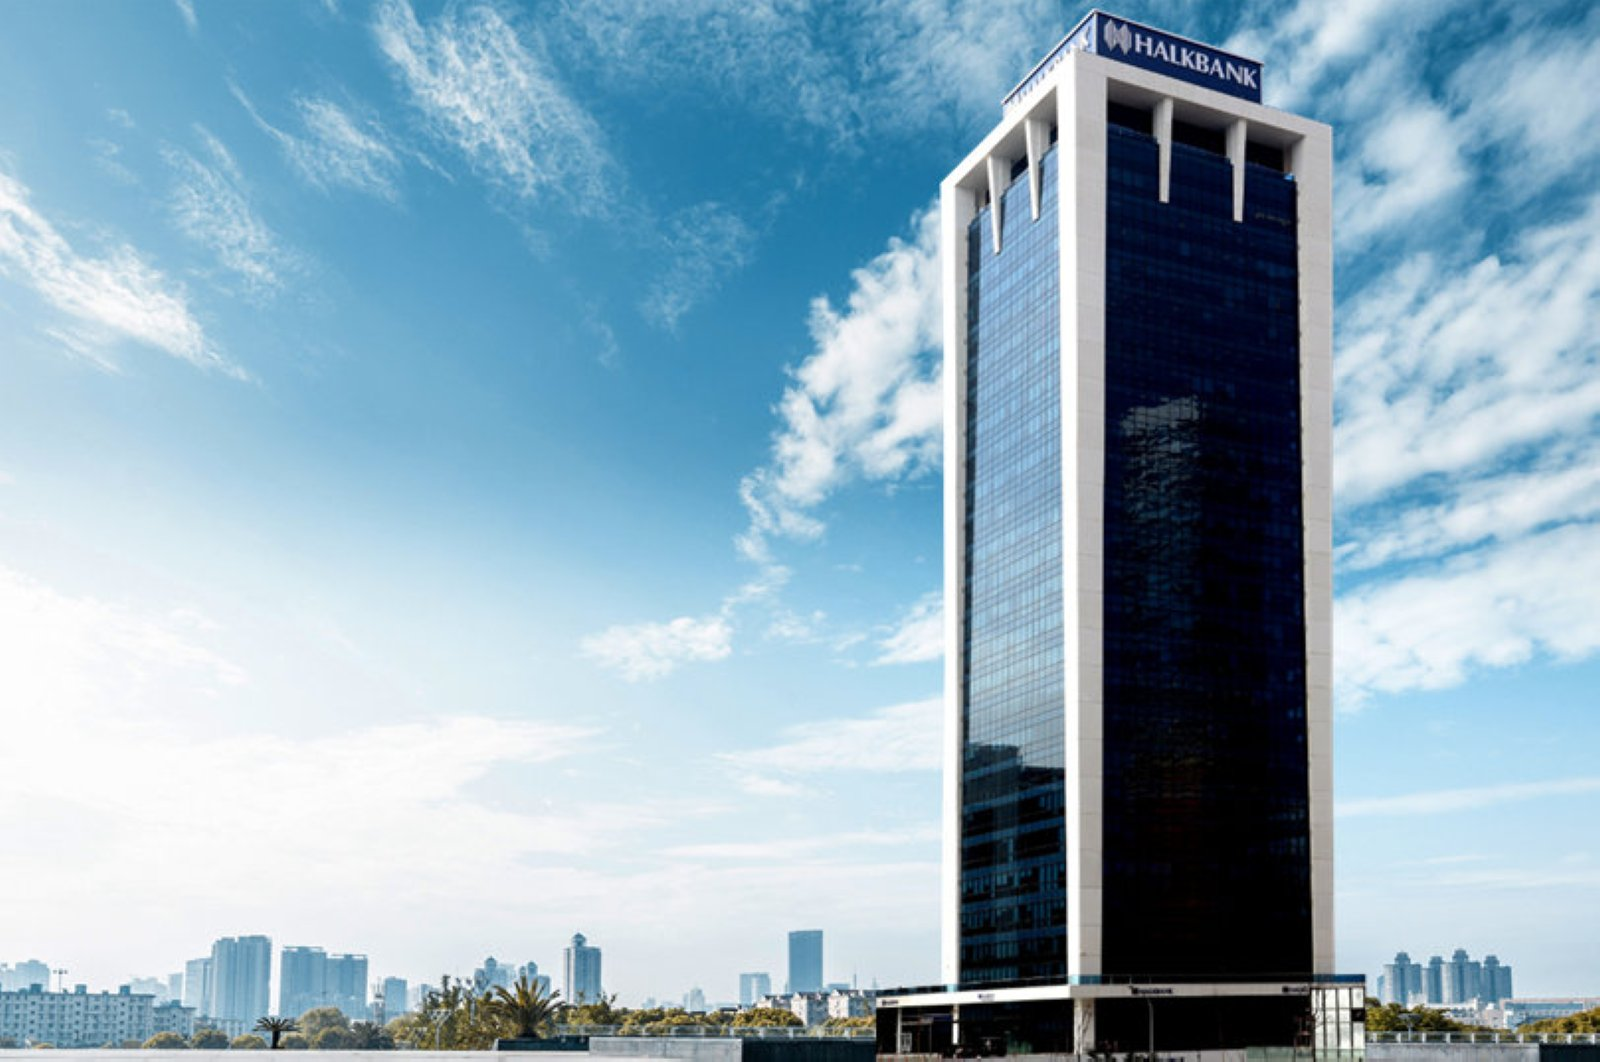 This file photo shows the Halkbank headquarters in Istanbul's Ataşehir district, Turkey, 2015. (Sabah File Photo)